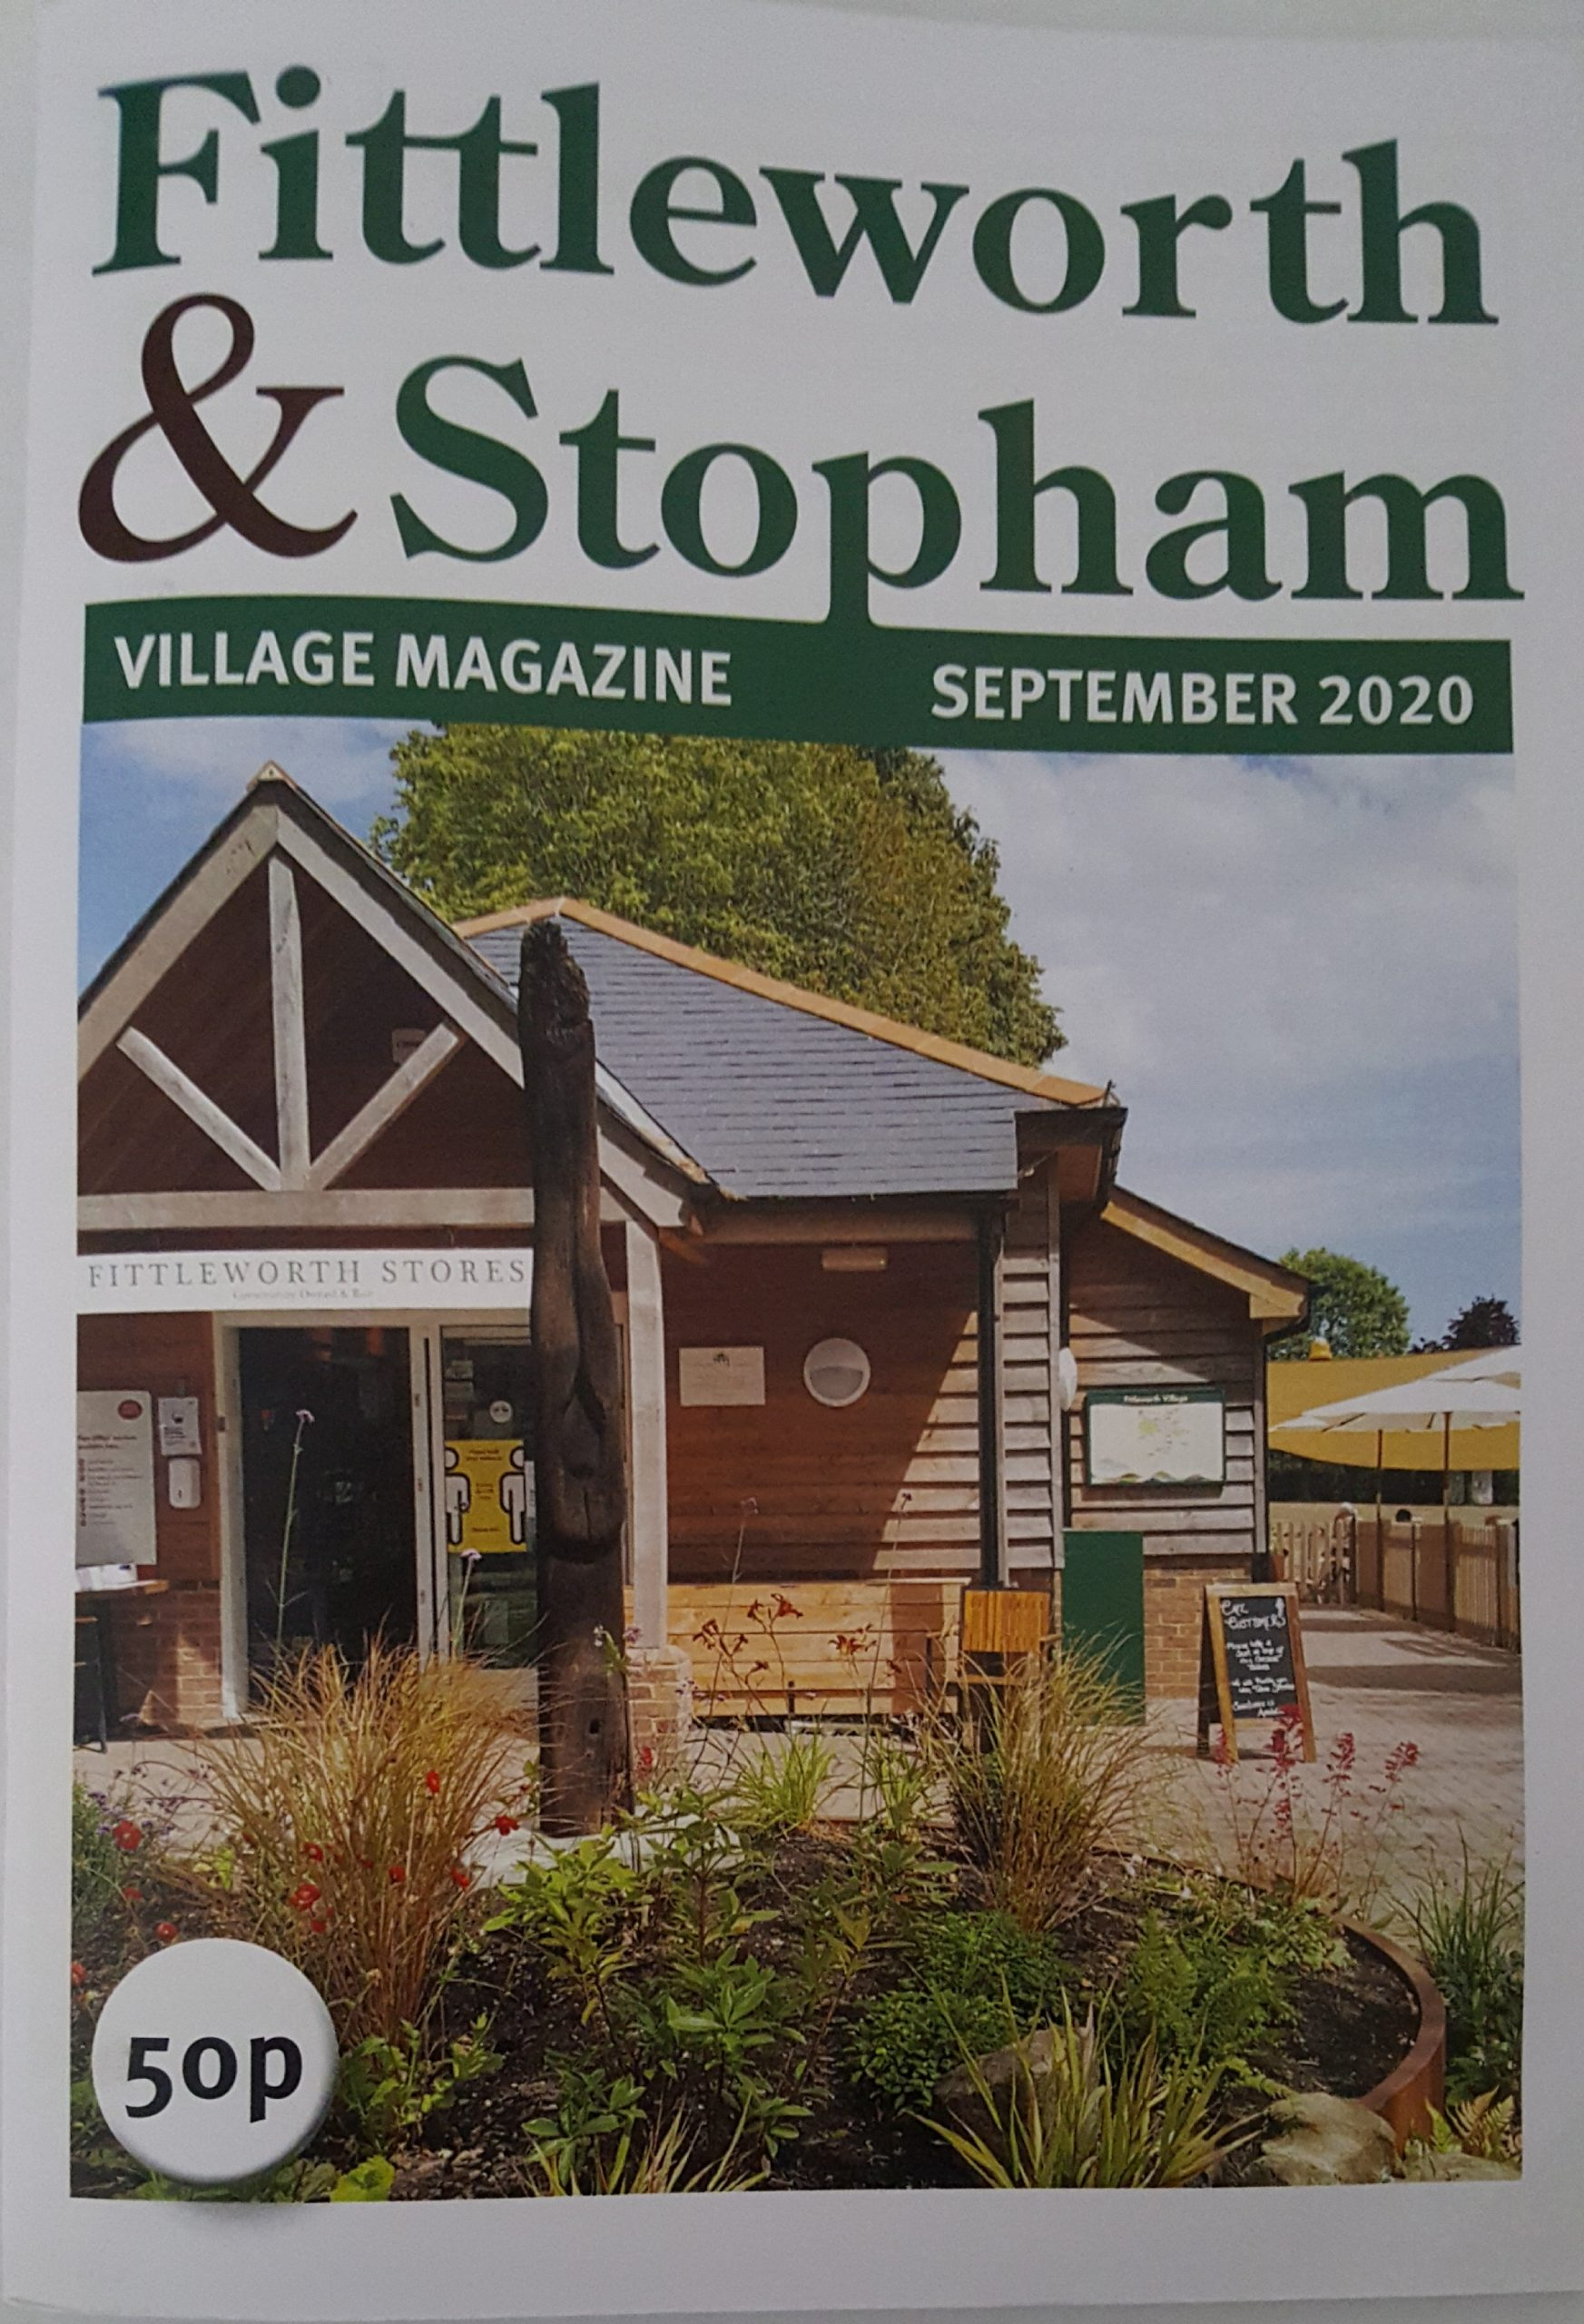 After four Covid-19 months – the September Village magazine is out!